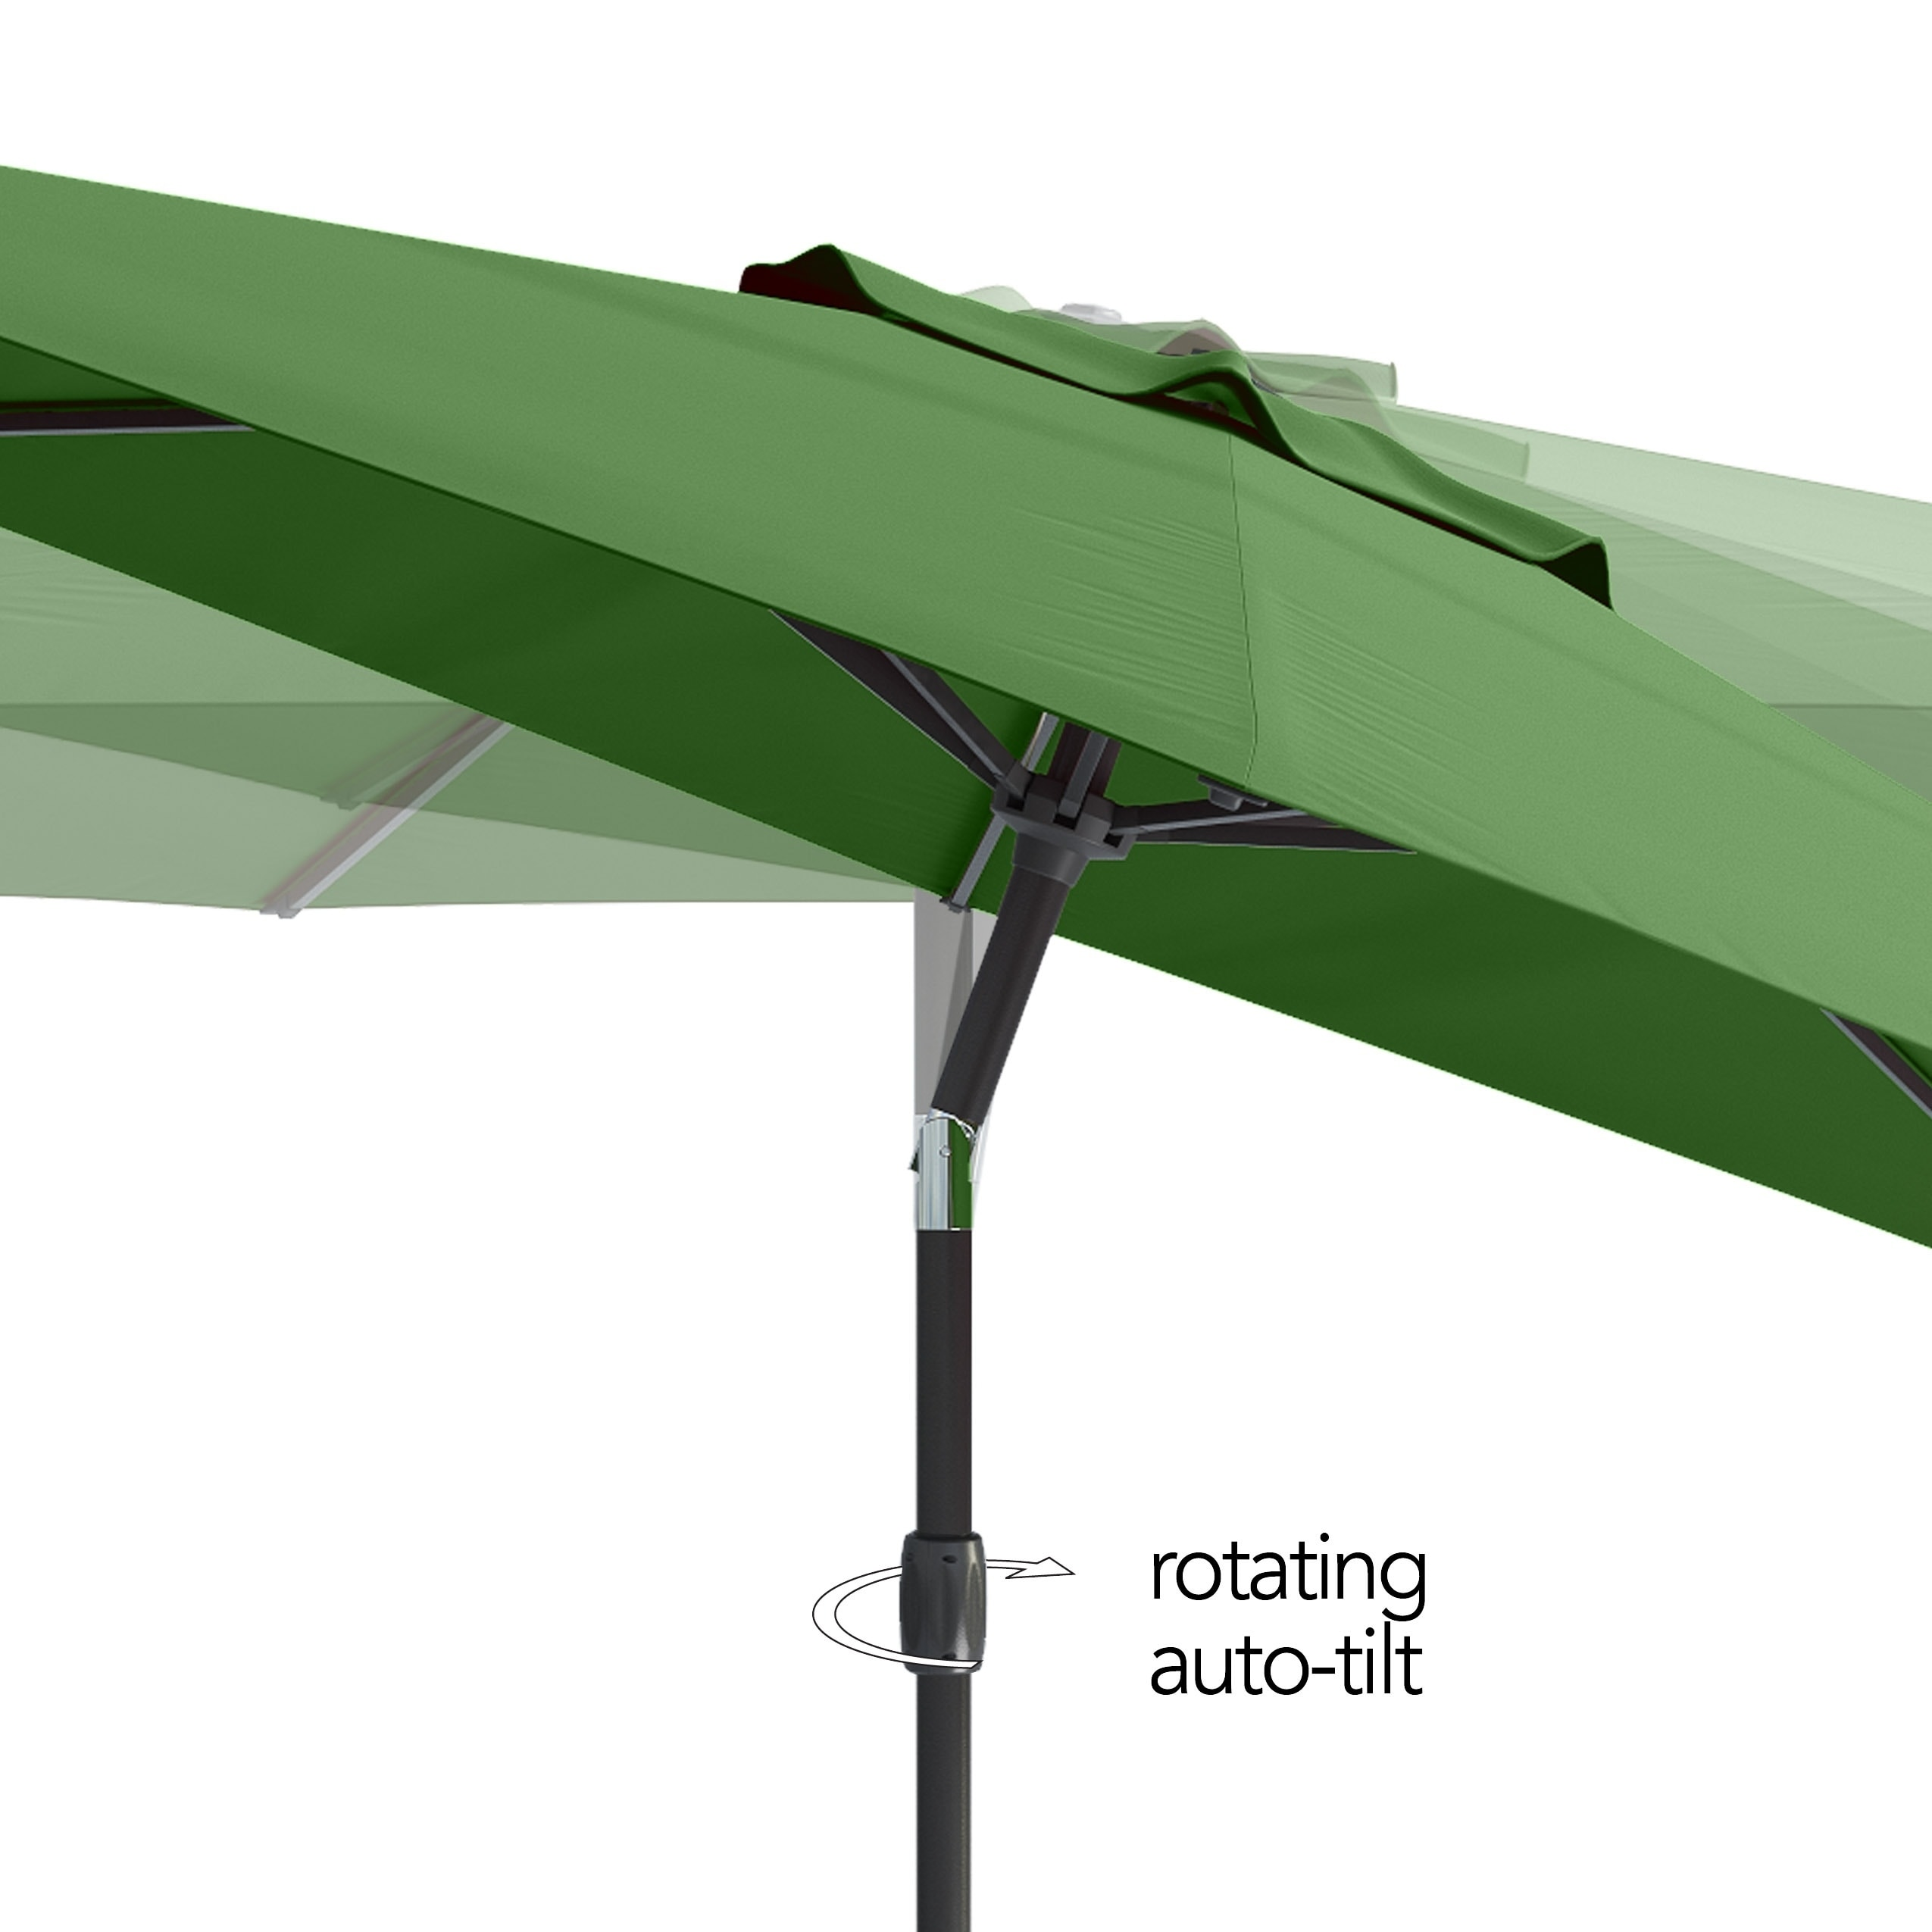 Beau Shop CorLiving UV And Wind Resistant Tilting Patio Umbrella   Free Shipping  Today   Overstock.com   20695335